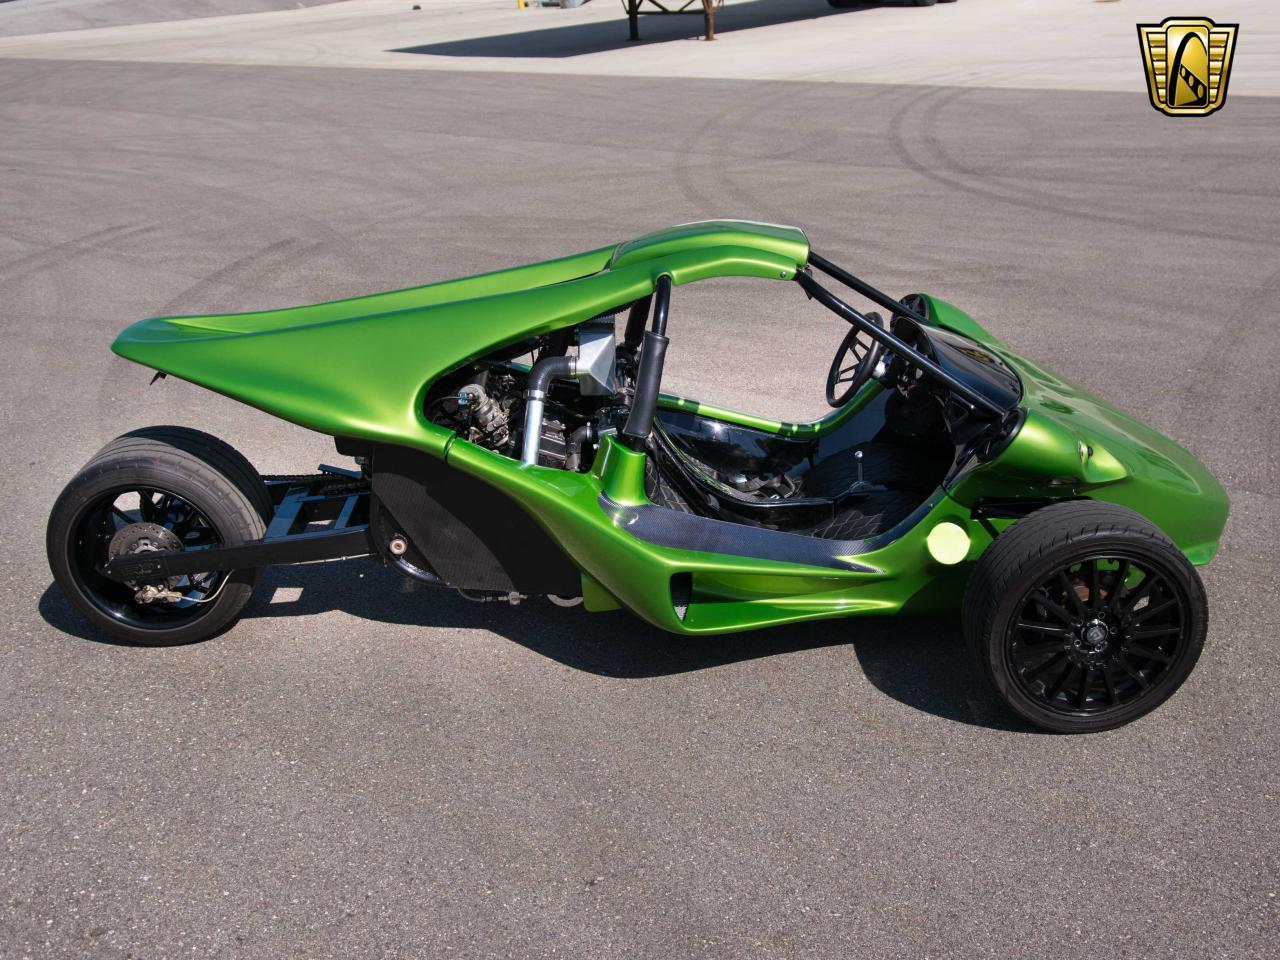 Large Picture of 2008 Kawasaki T-Rex Replica located in Wisconsin - $44,595.00 Offered by Gateway Classic Cars - Milwaukee - L7NA